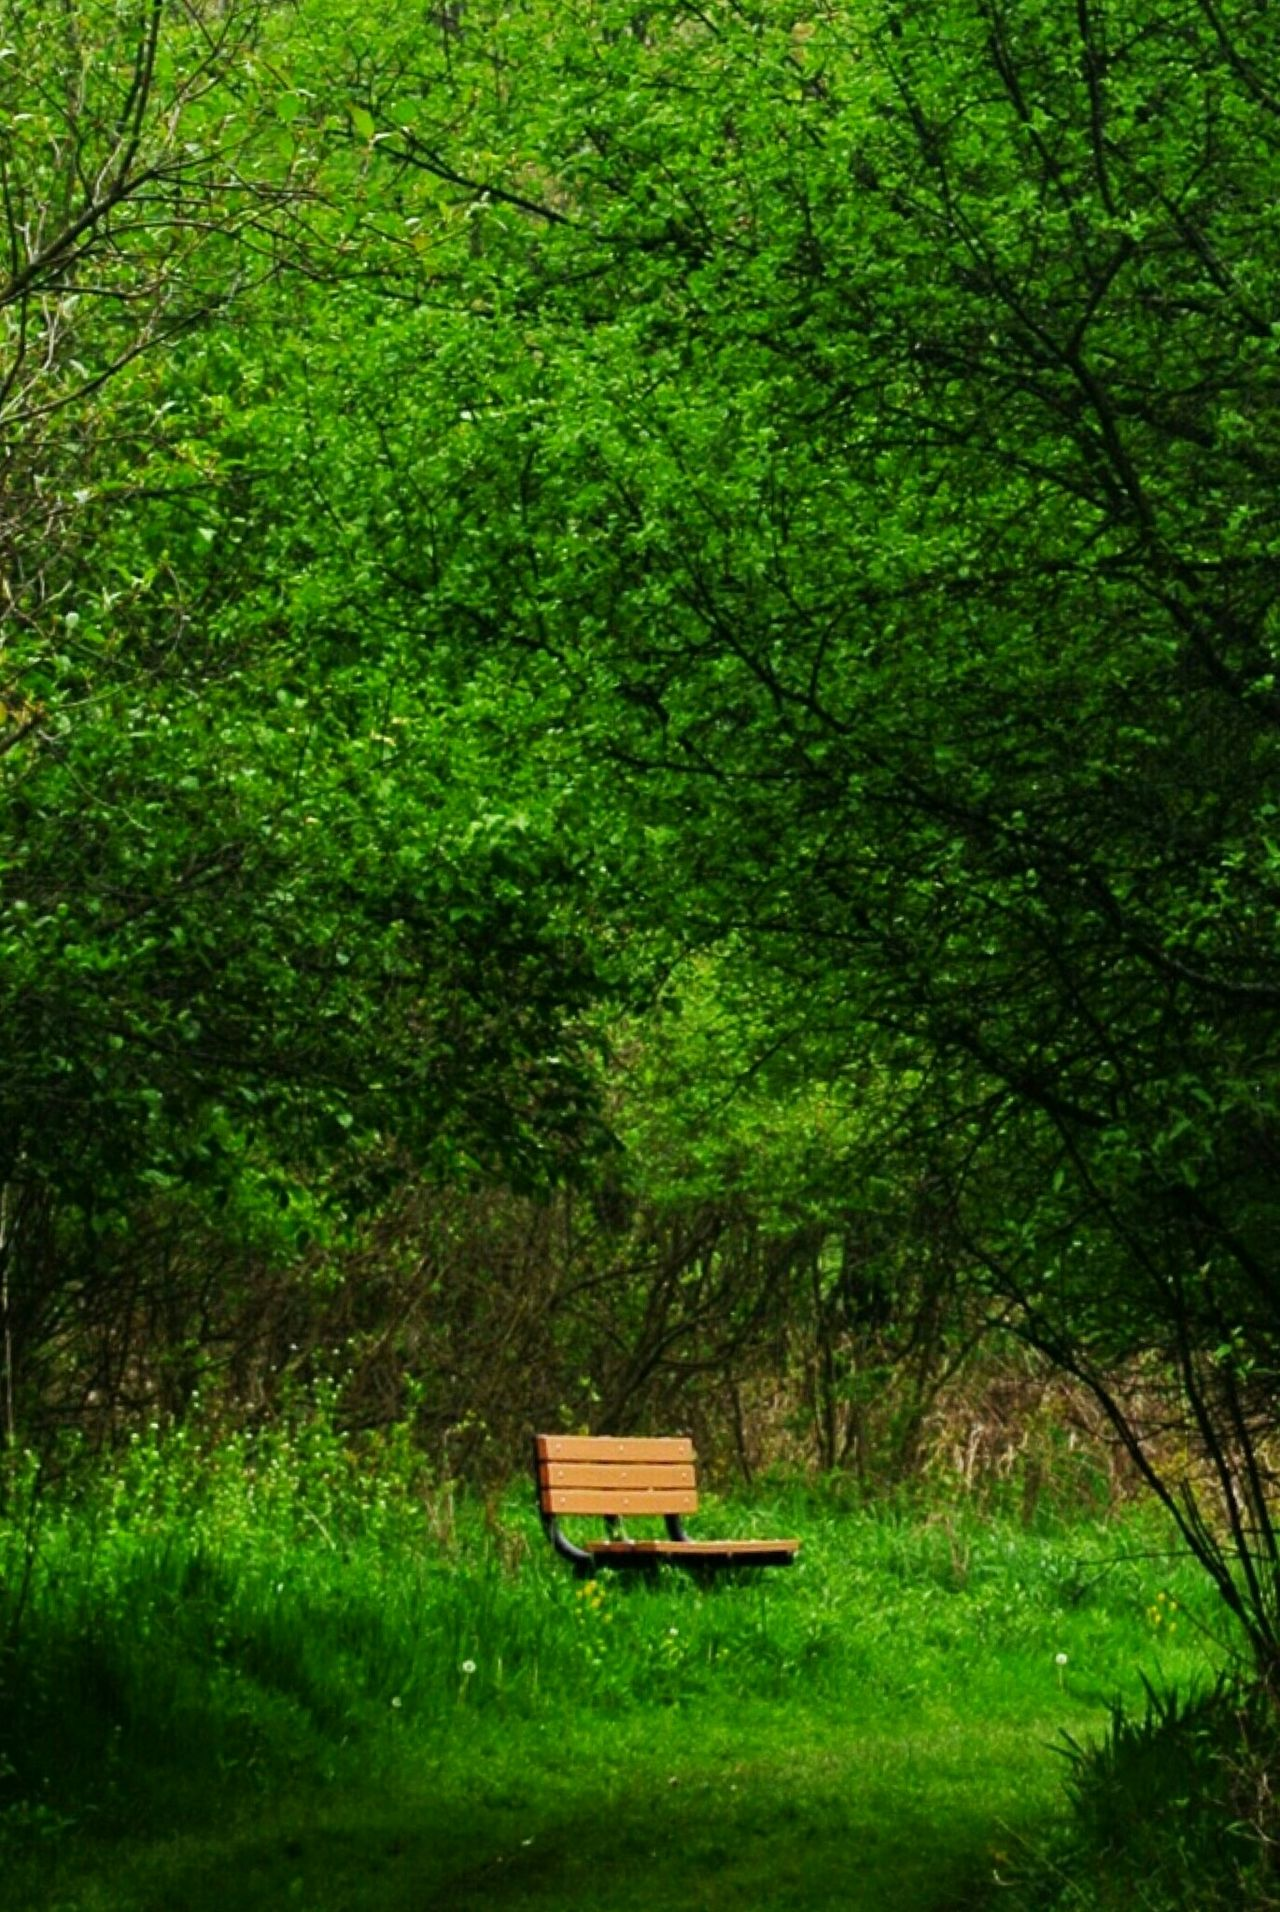 Take A Seat And Relax 😄 Relaxing Enjoying Life EyeEm Nature Lover Nature_collection Nikon Landscape_Collection